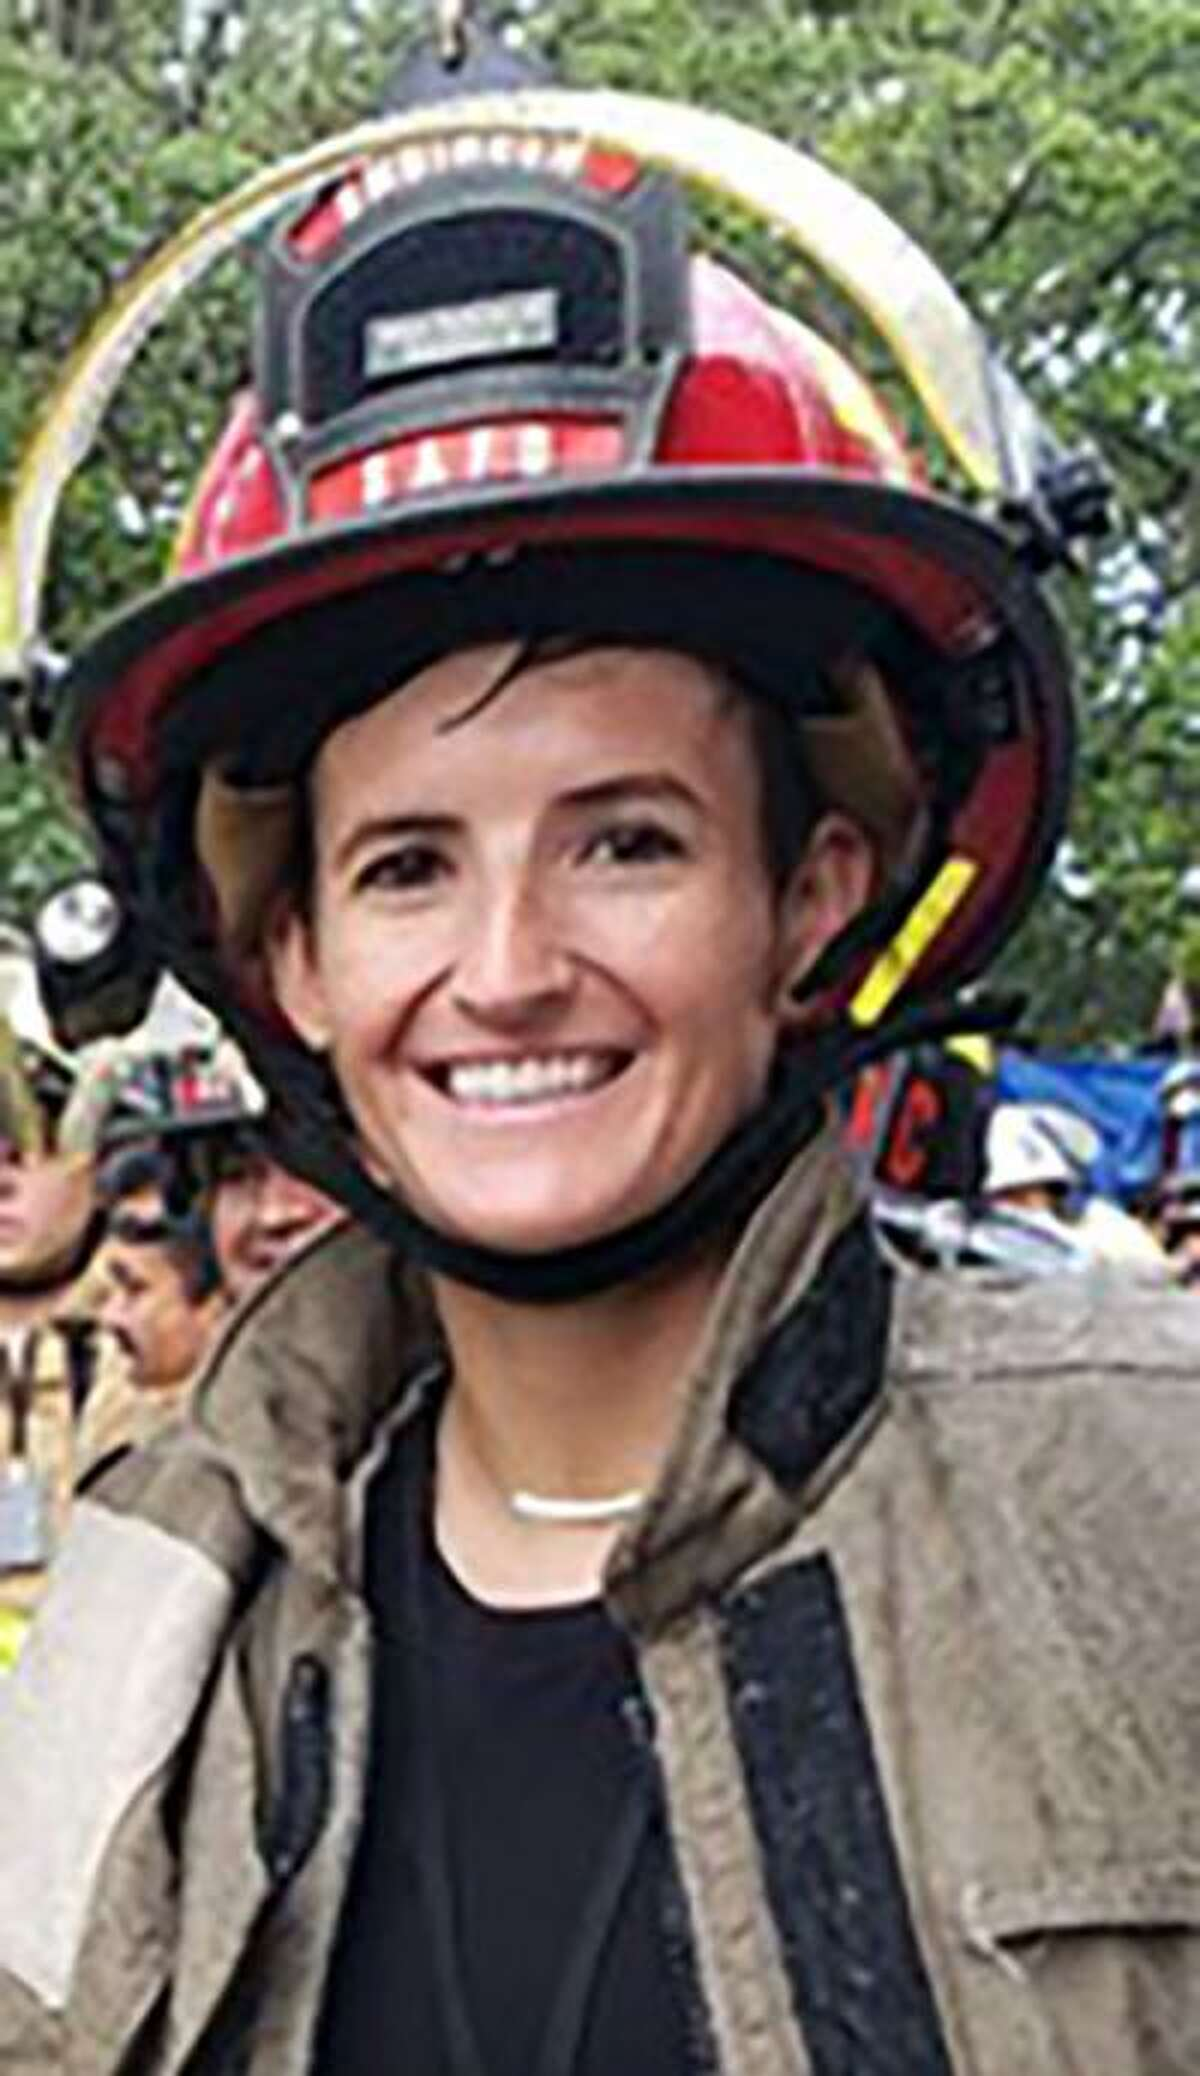 Ashley Long, an arson investigator with the San Antonio Fire Department, filed a complaint with the U.S. Equal Employment Opportunity Commission earlier this year alleging sex discrimination and workplace retaliation.